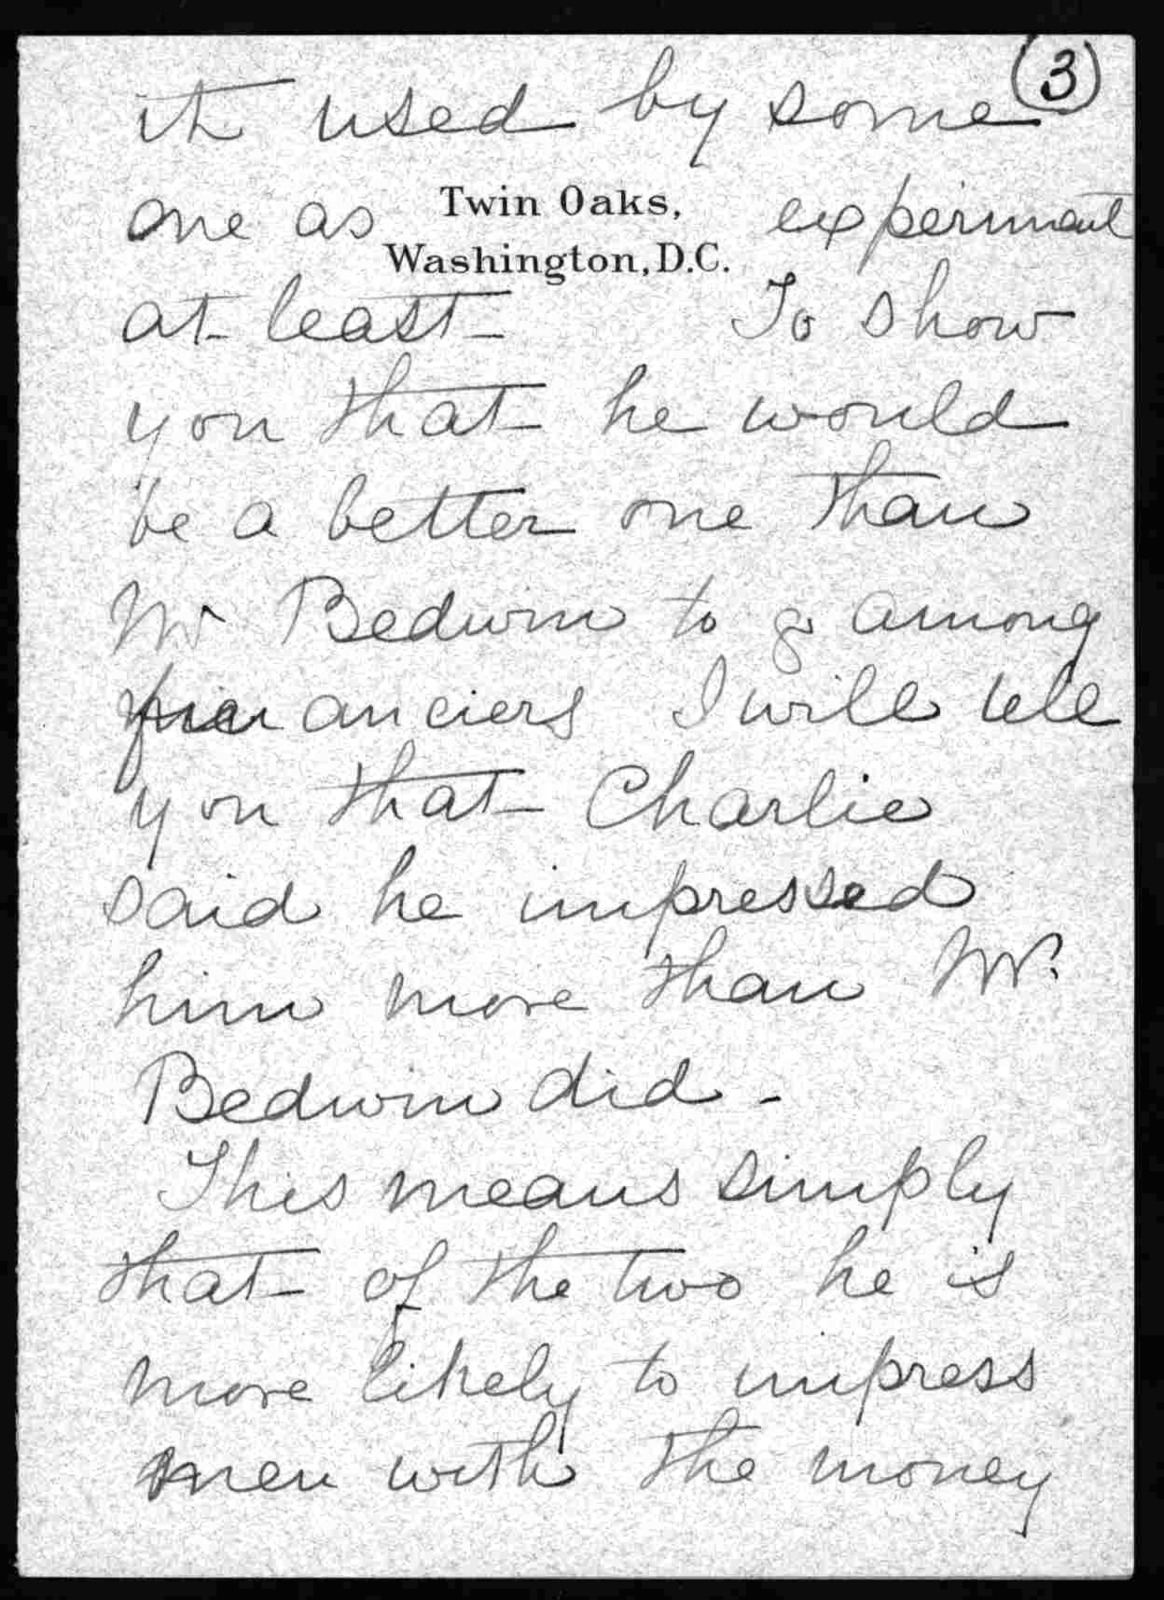 Letter from Mabel Hubbard Bell to Alexander Graham Bell, August 28, 1906